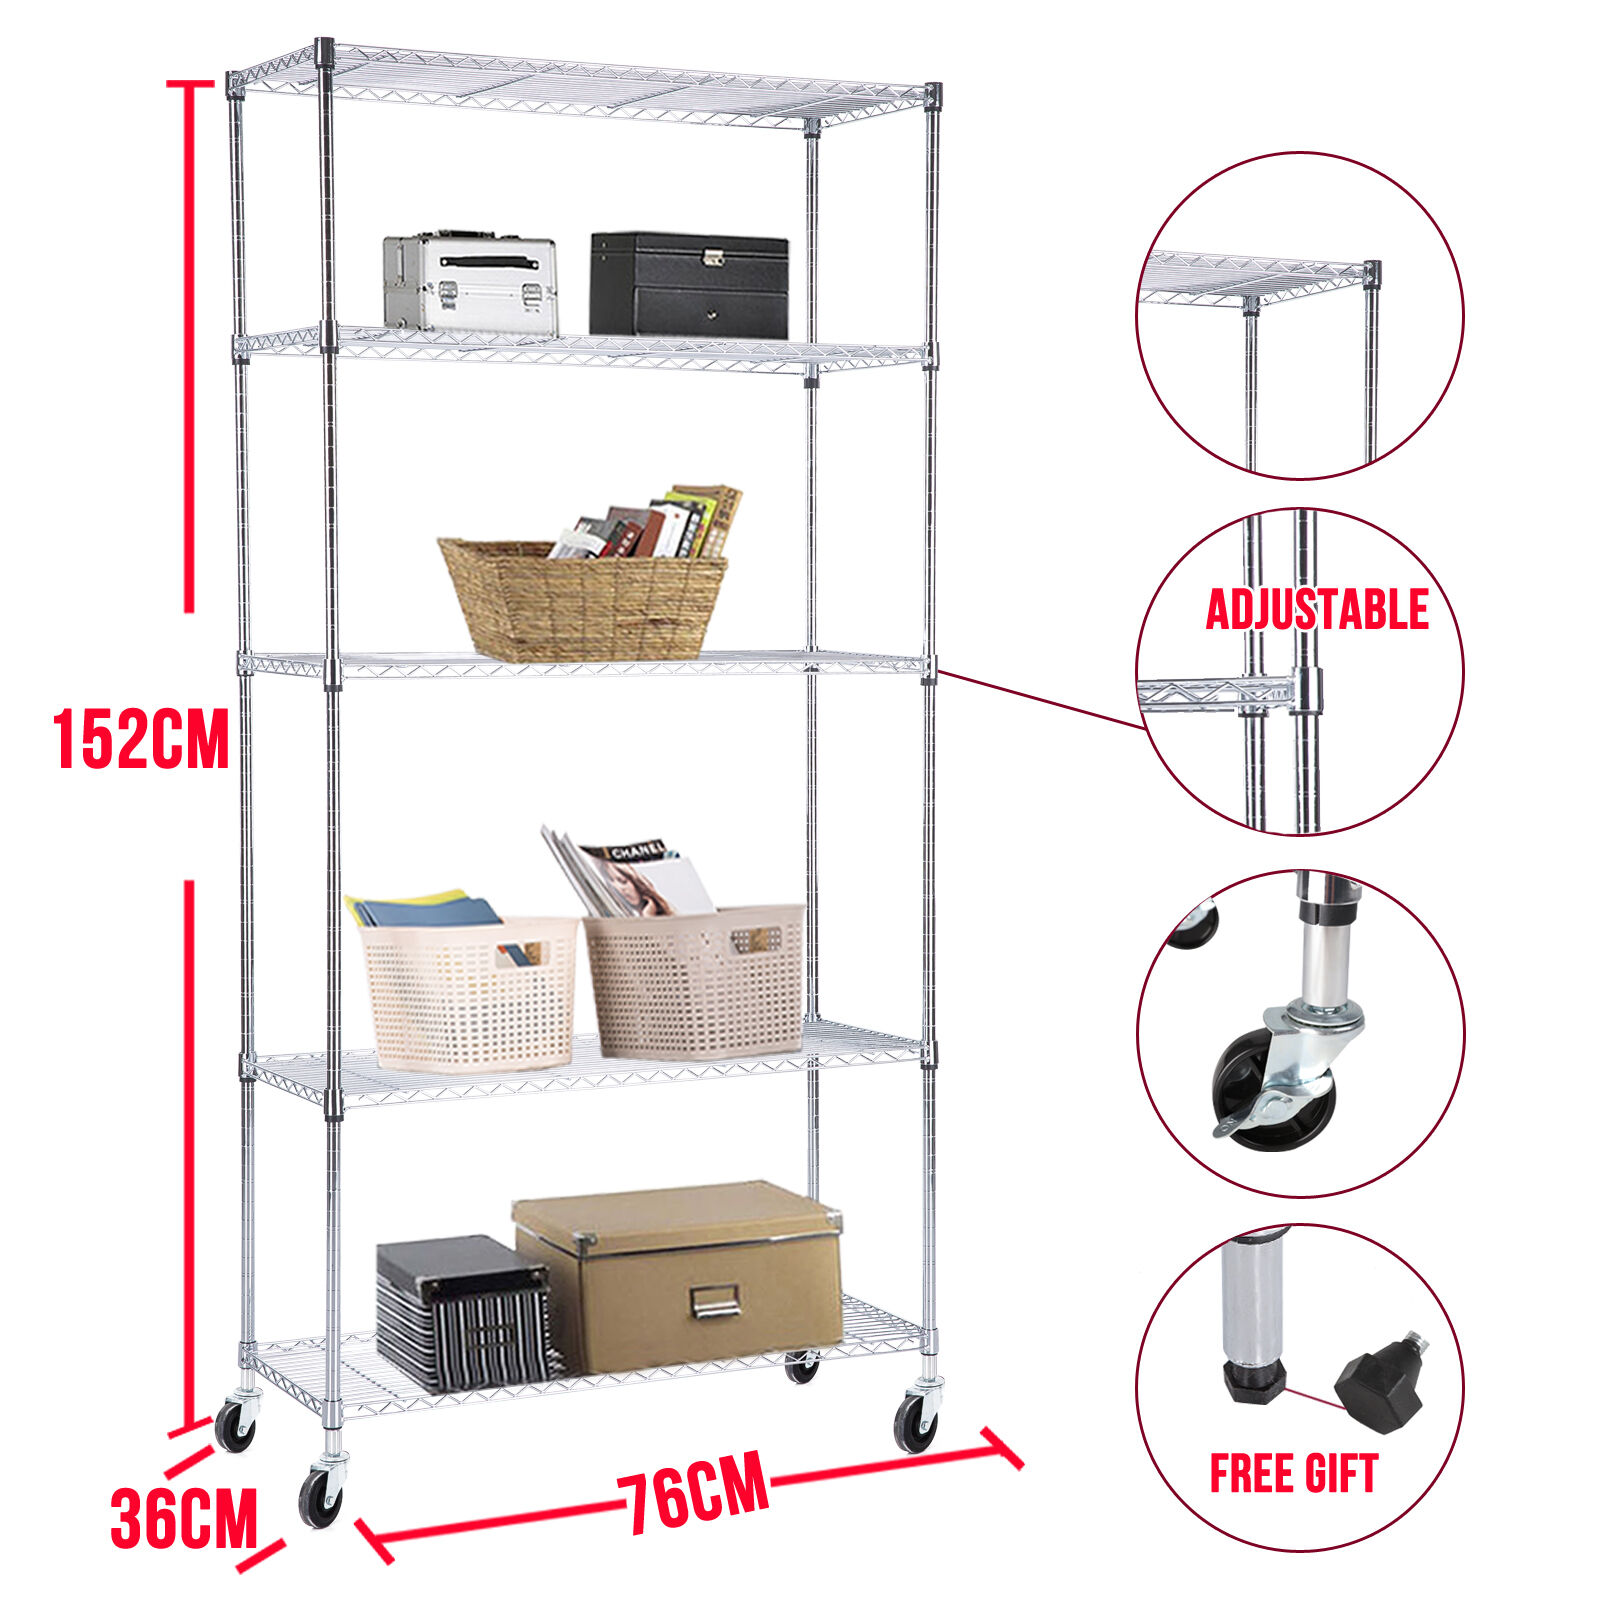 adjustable 5 tier wire shelving rack heavy duty chrome steel shelf wwheels